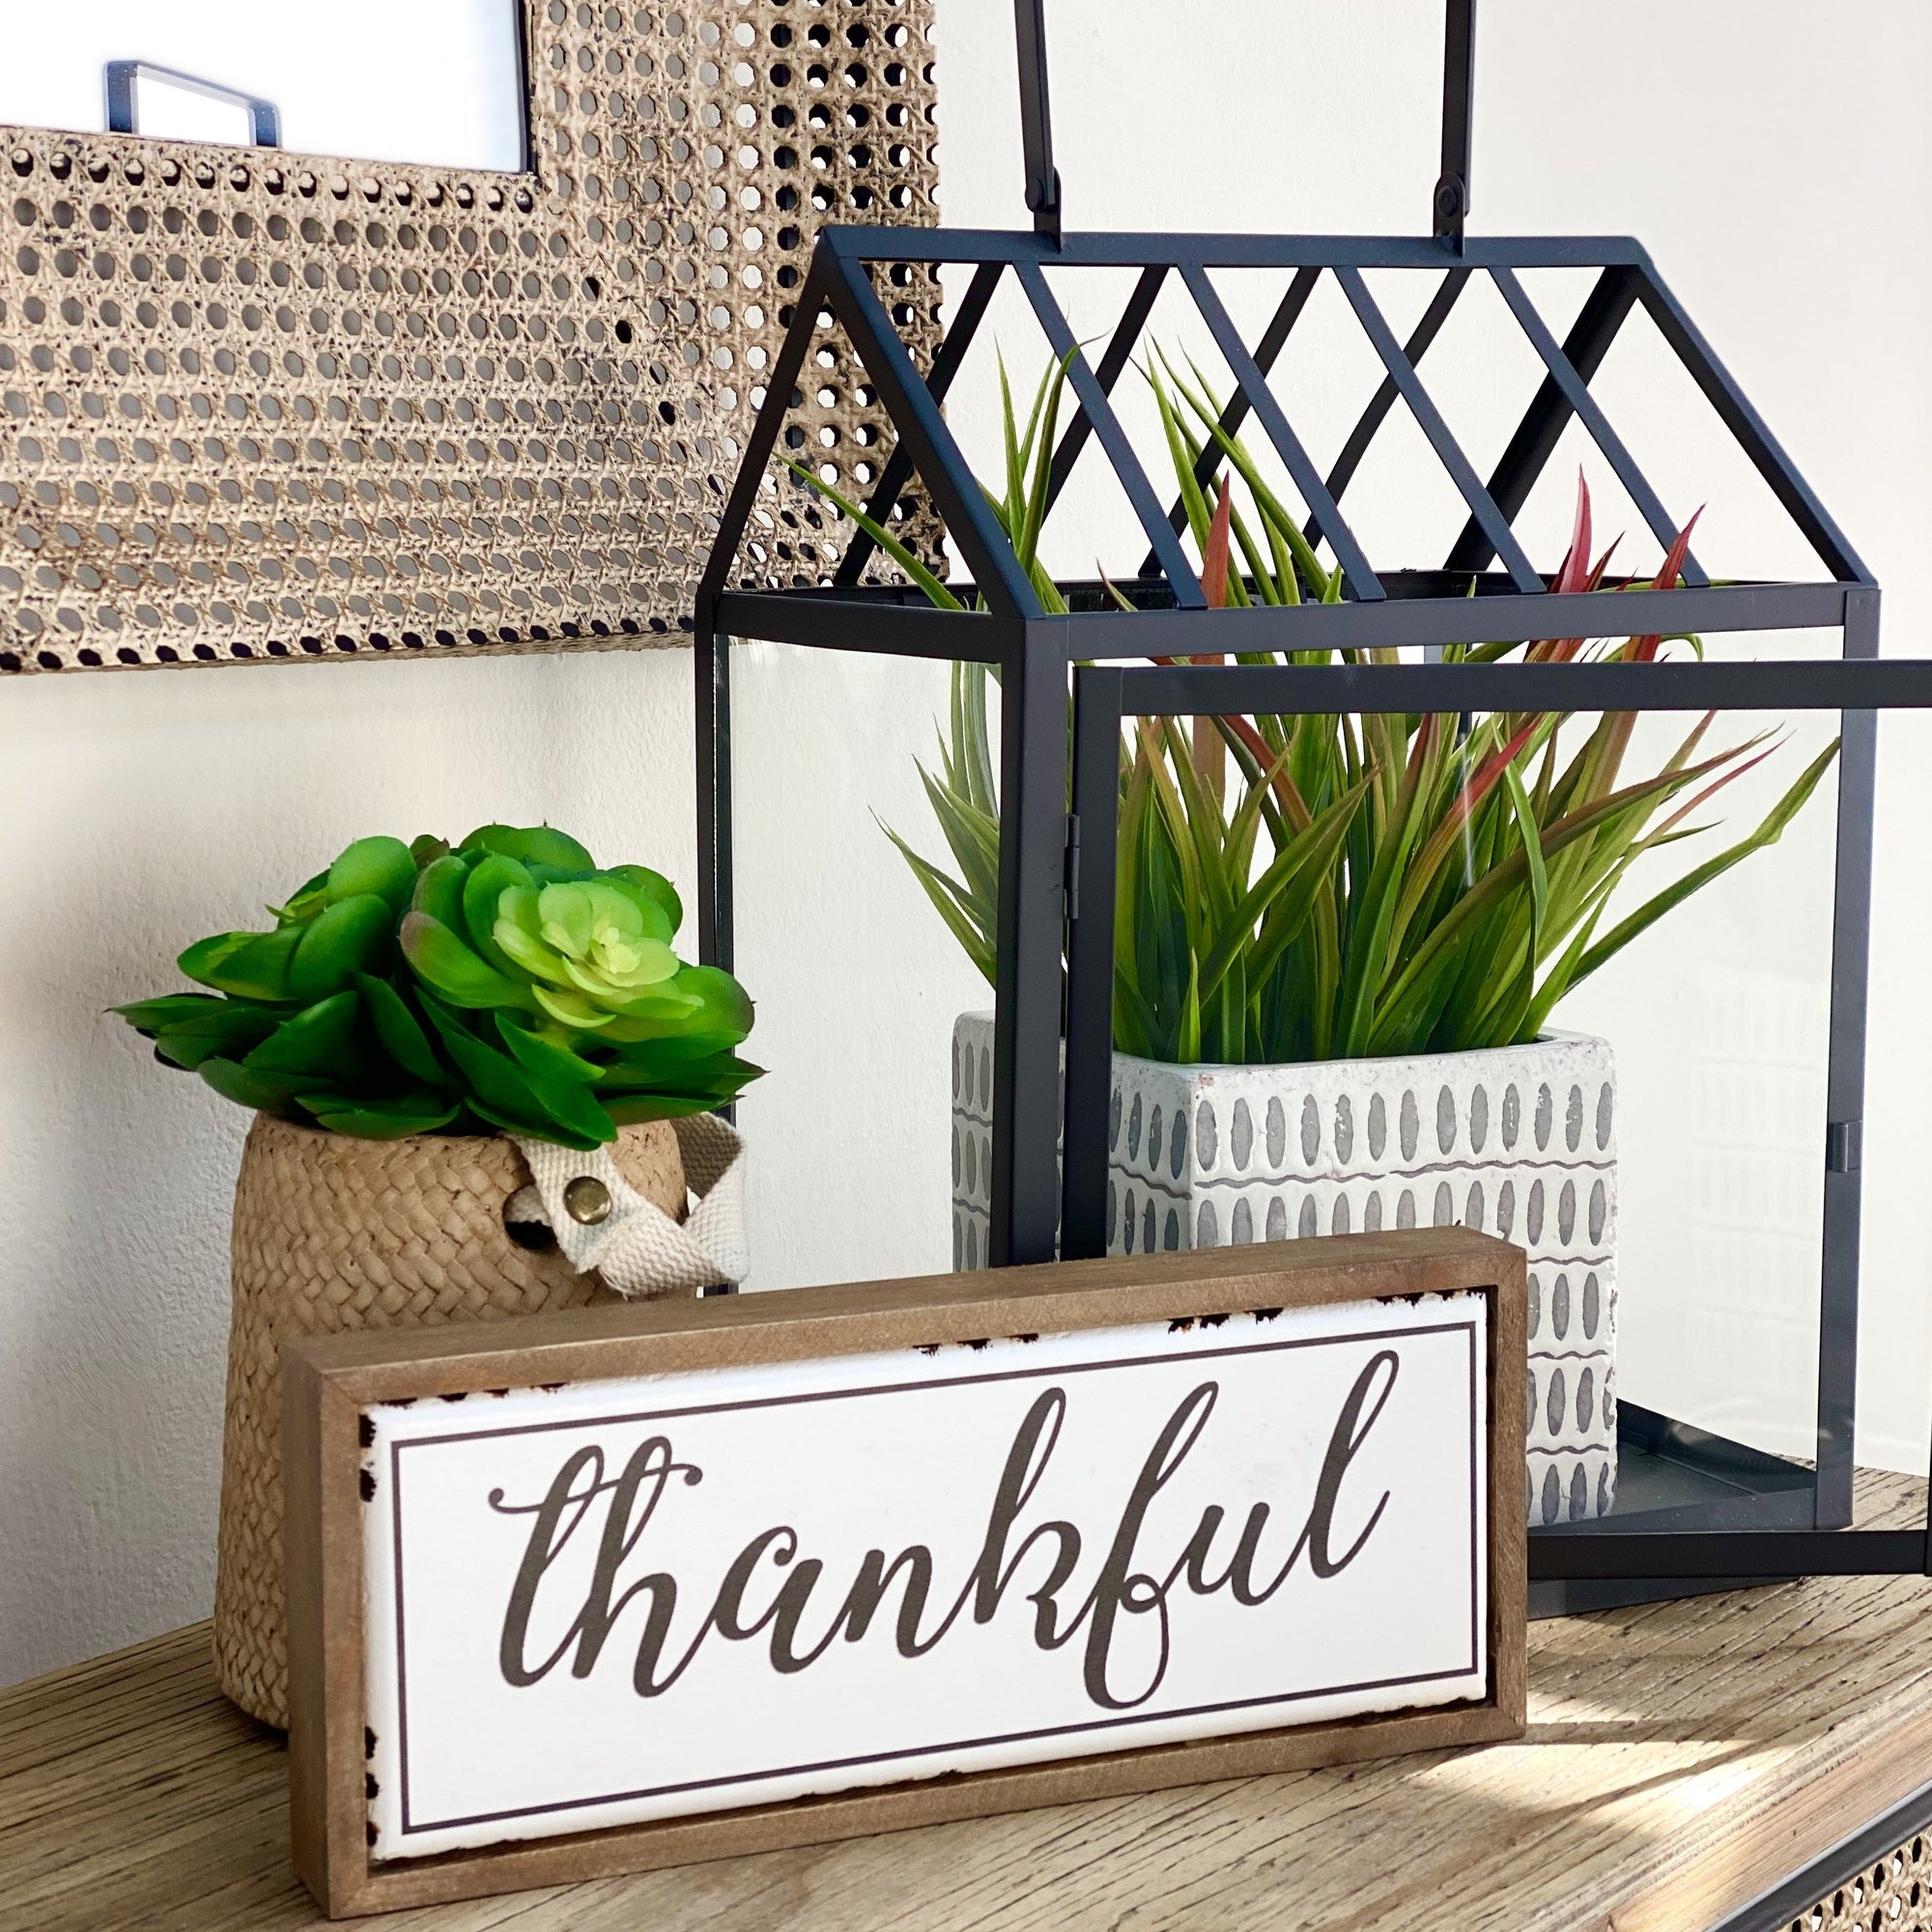 Thankful Wood and Metal Table Top Sign